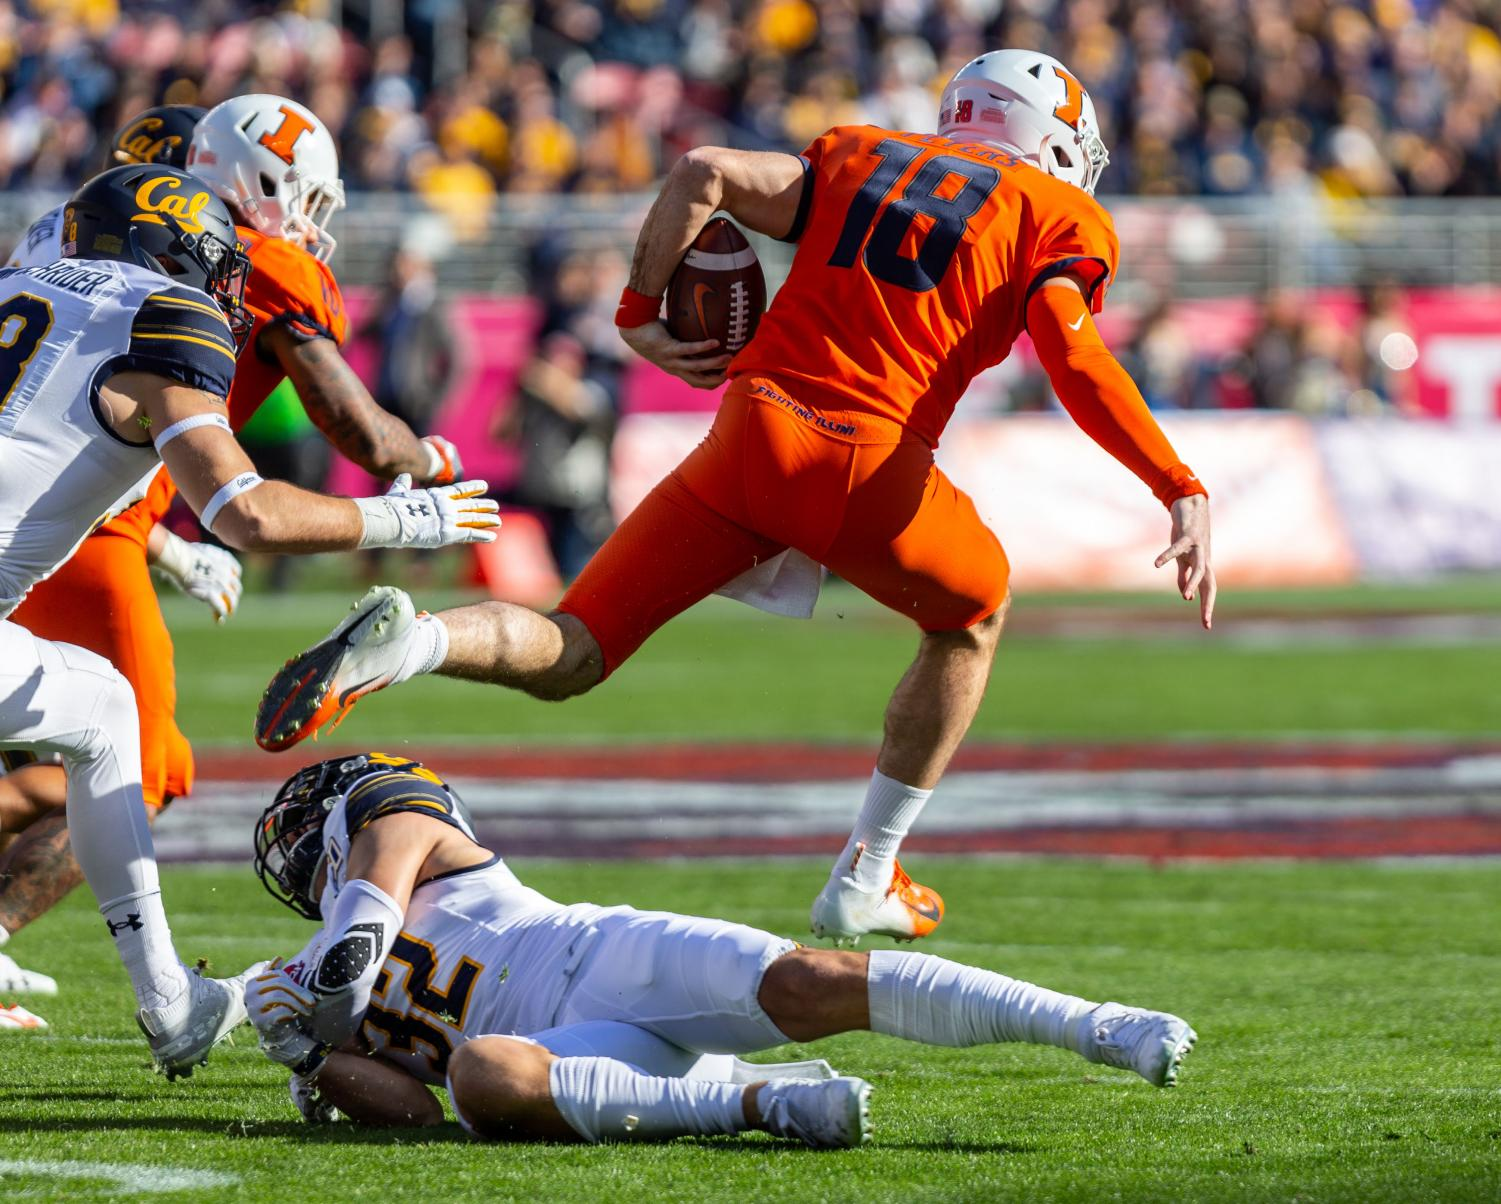 Graudate transfer quarterback Brandon Peters jumps over a California defender during the Redbox Bowl on Monday. Illinois fell to California 35-20 in the team's first bowl game since 2014.